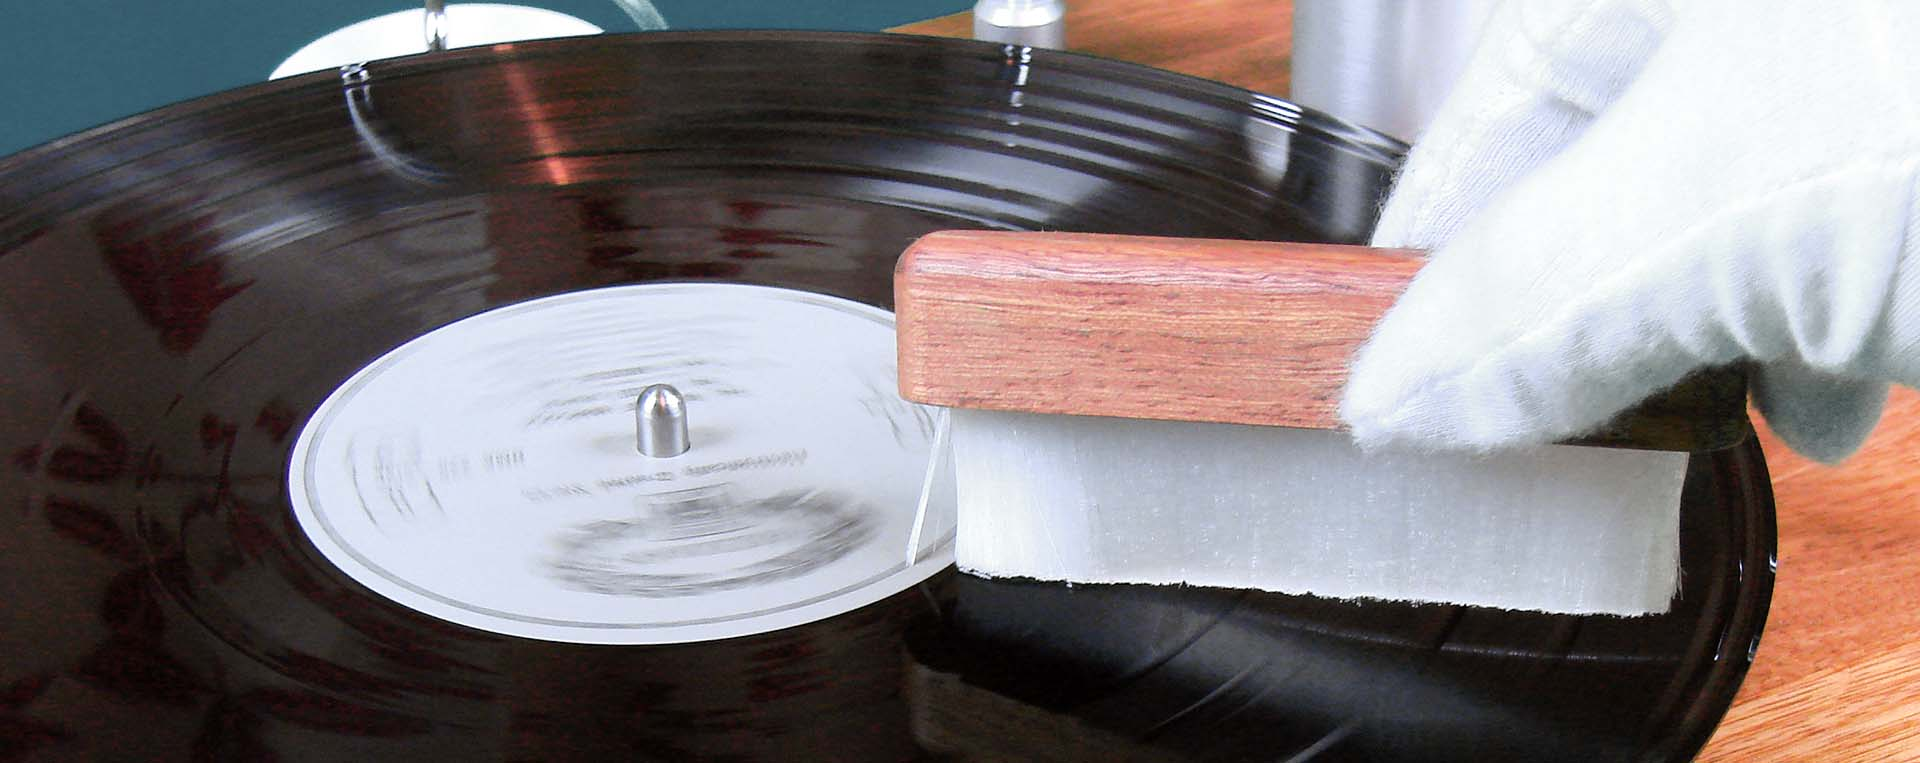 Mail order vinyl record cleaning service